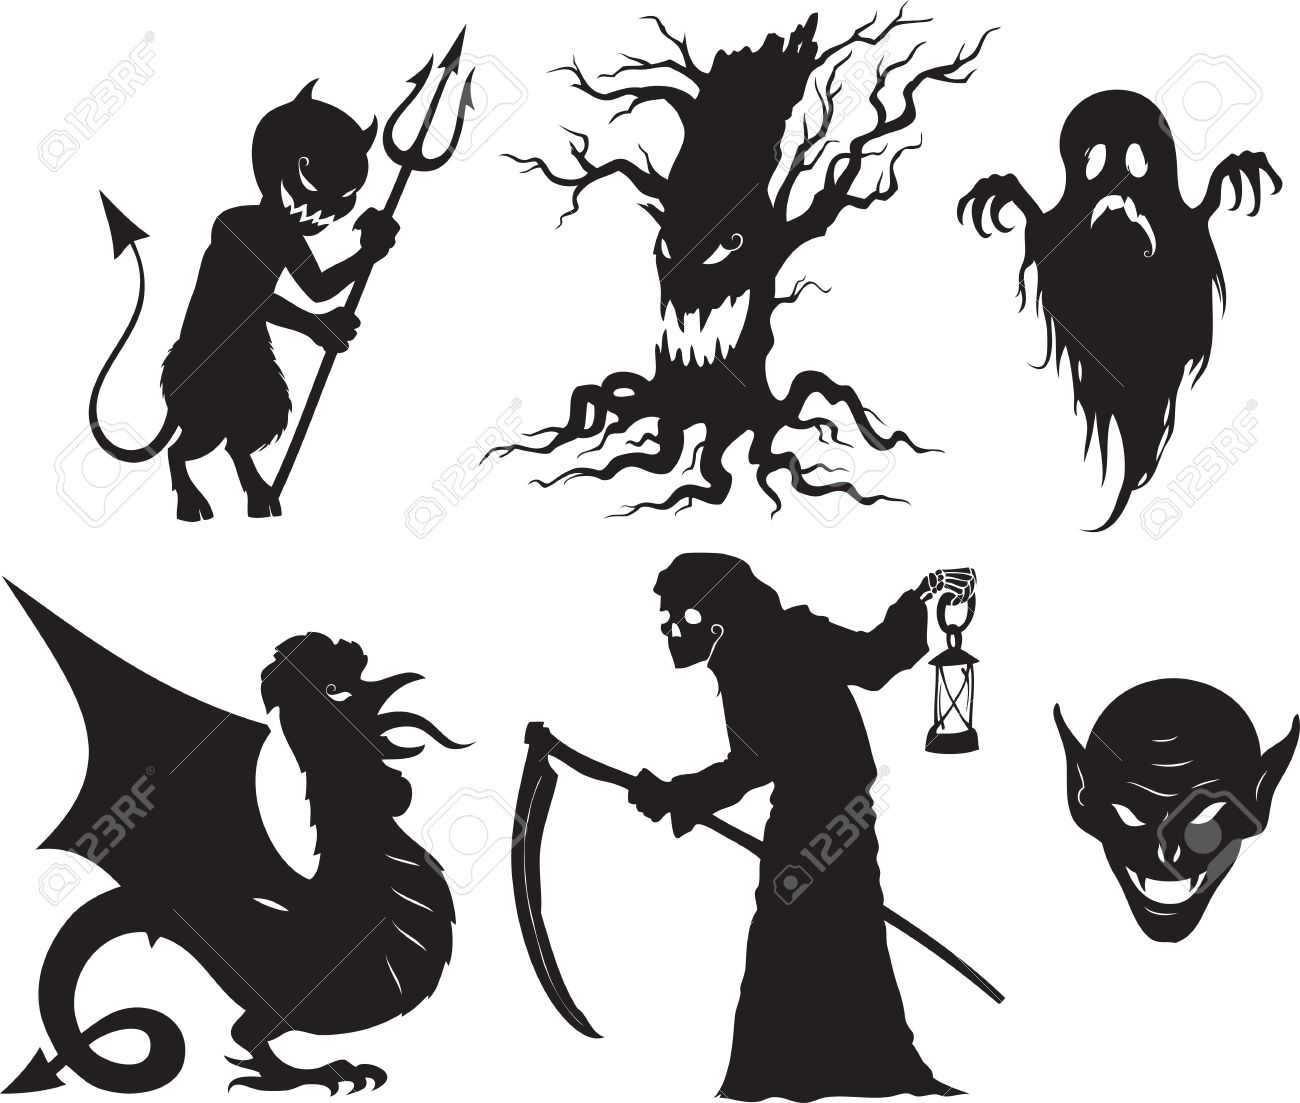 Halloween Vector Black And White.Black And White Cartoon Shapes On Halloween Theme